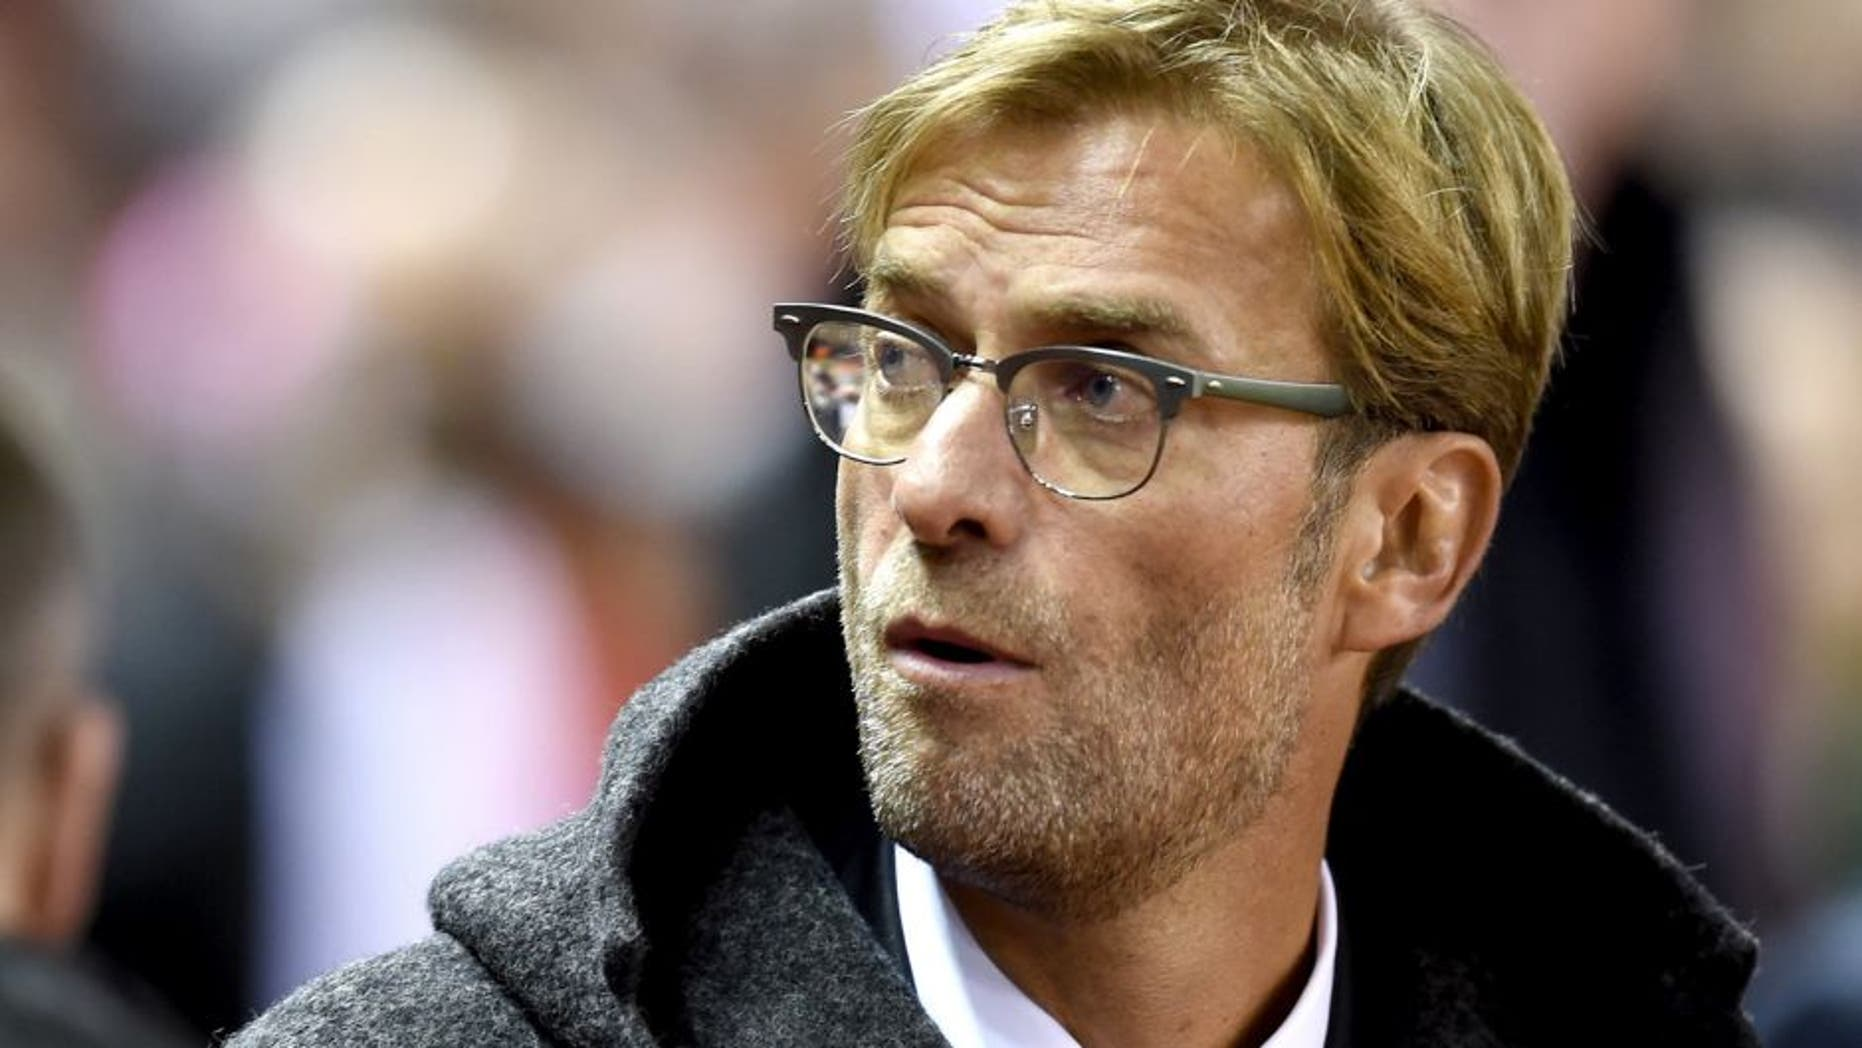 LIVERPOOL, ENGLAND - OCTOBER 22: Jurgen Klopp the manager of Liverpool looks on during the UEFA Europa League Group B match between Liverpool FC and Rubin Kazan at Anfield on October 22, 2015 in Liverpool, United Kingdom. (Photo by Michael Regan/Getty Images)